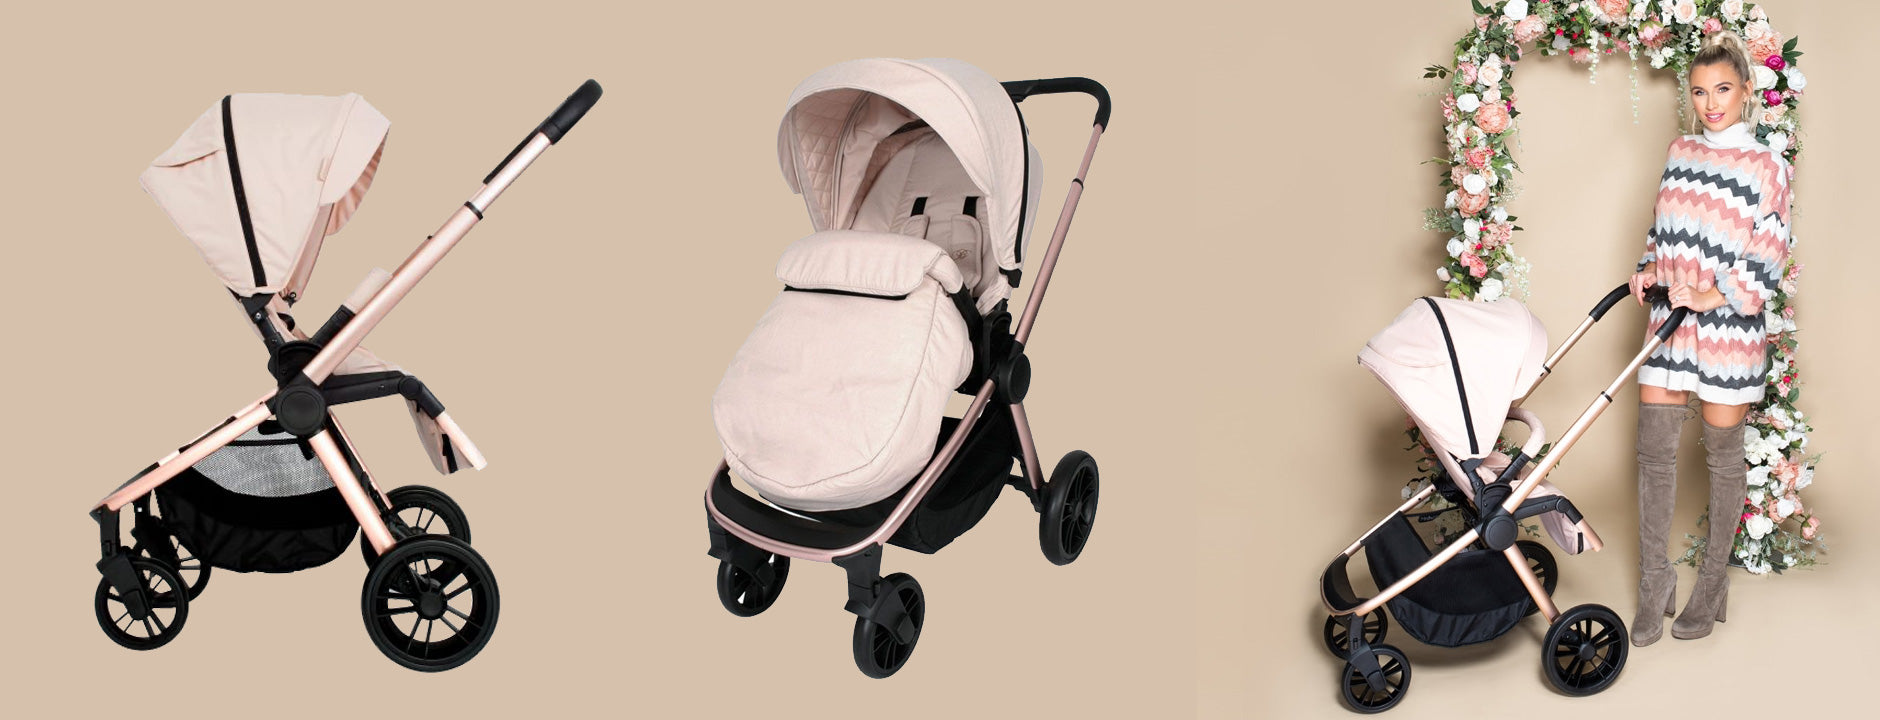 My Babiie MB400 Pushchair and Travel System